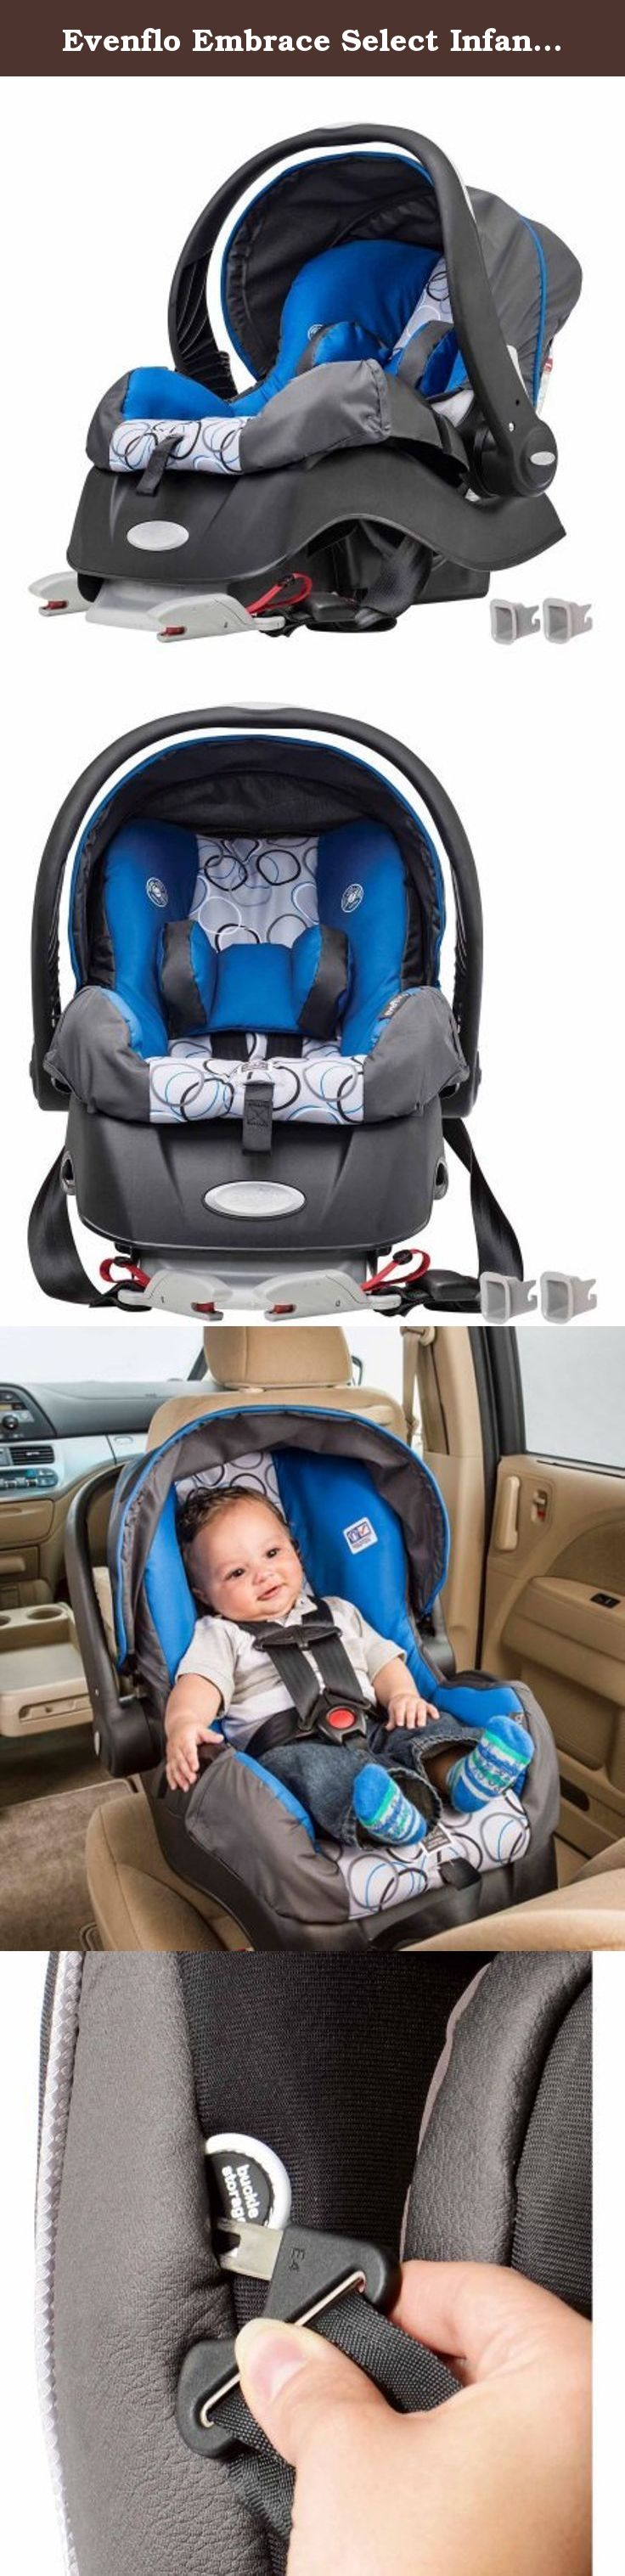 Evenflo Embrace Select Infant Car Seat With Sure Safe Installation Ashton Specifically For Infants